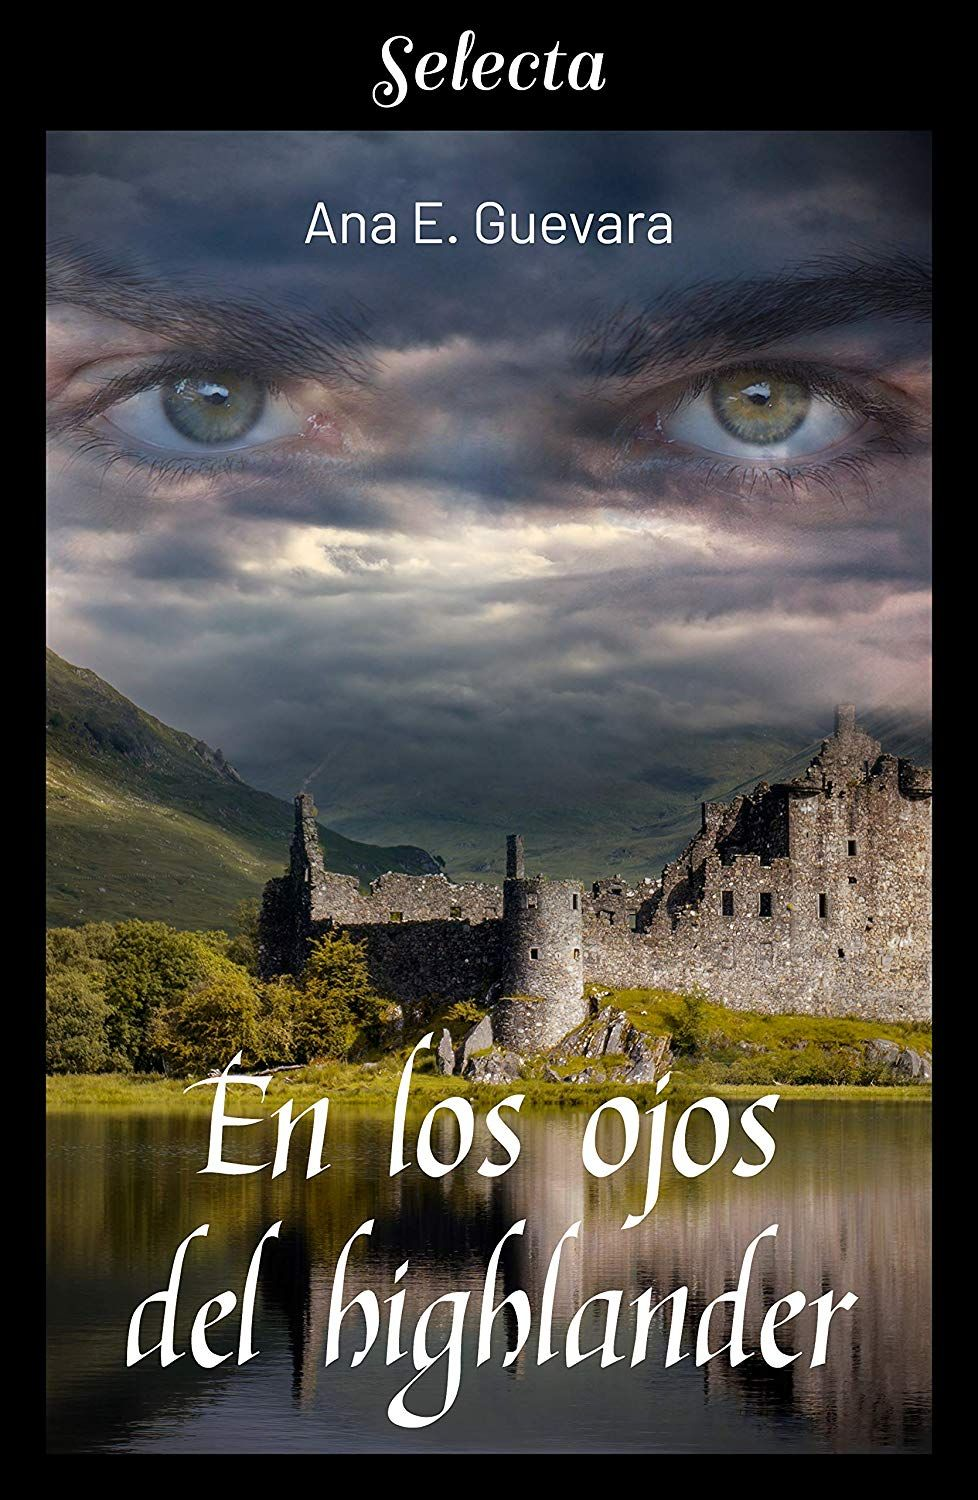 En los ojos del highlander eBook: Ana E. Guevara: Amazon.es: